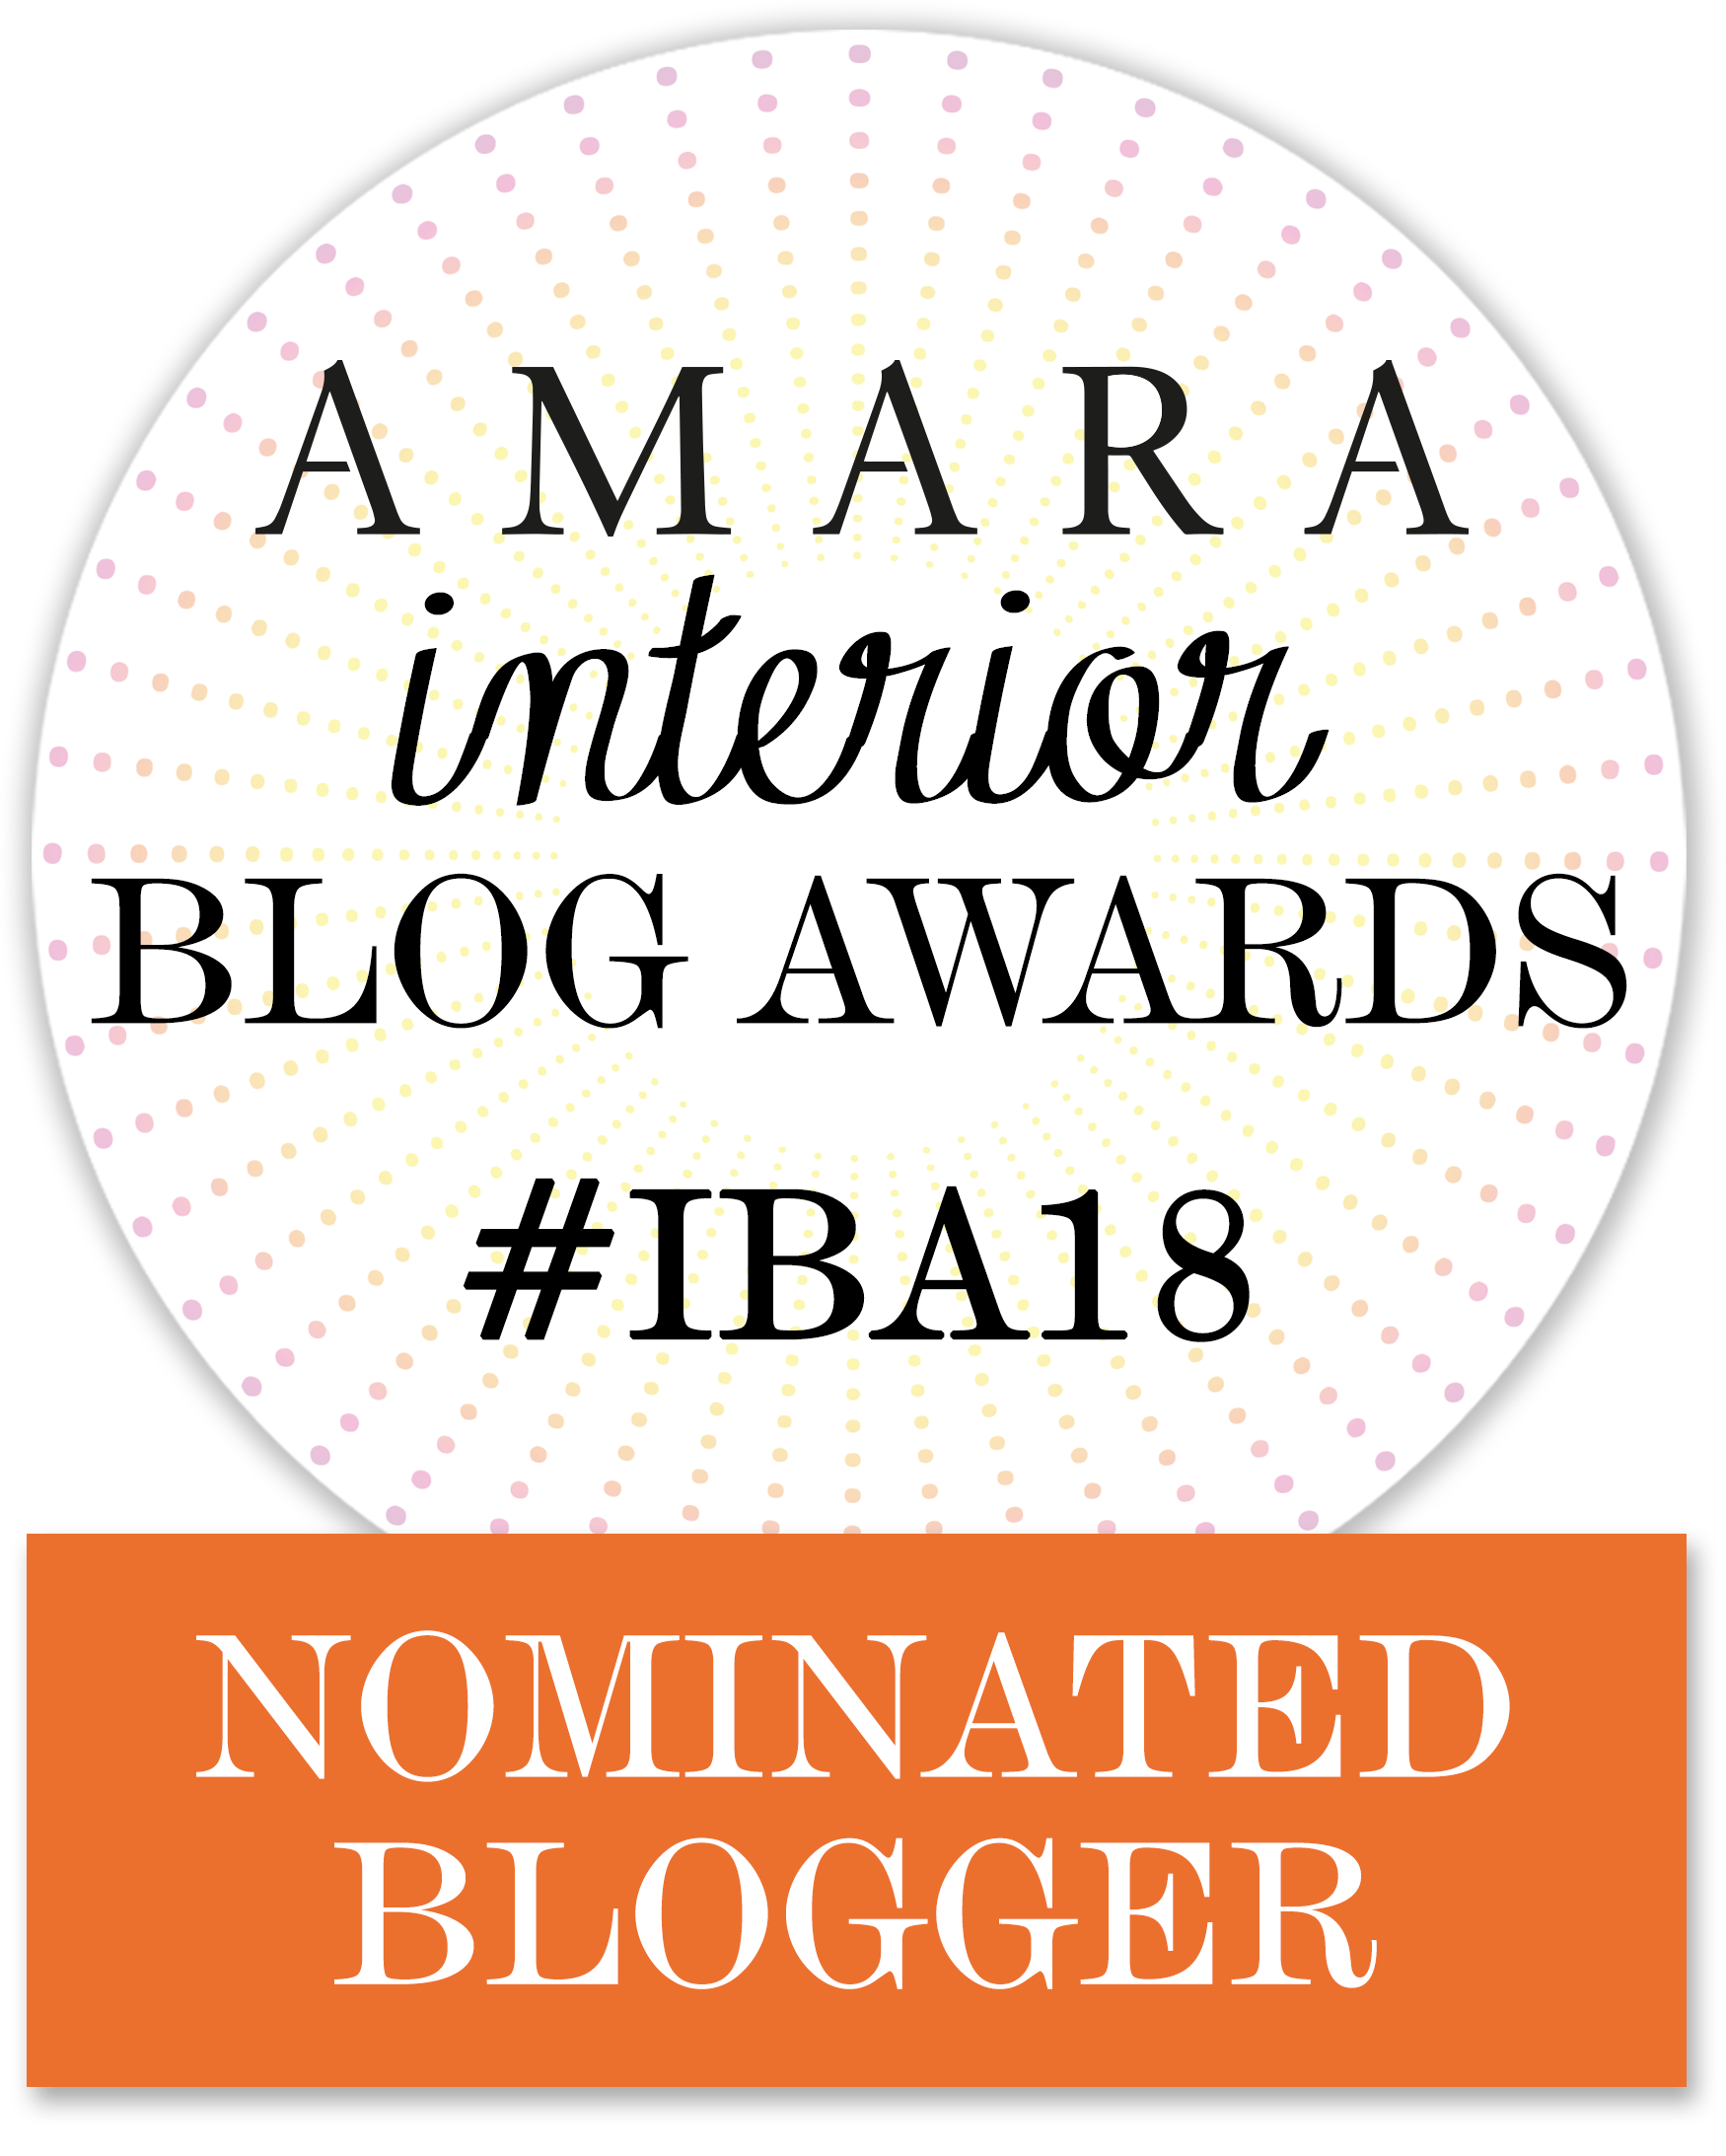 I've been nominated for the Amara Interior Blog Awards!